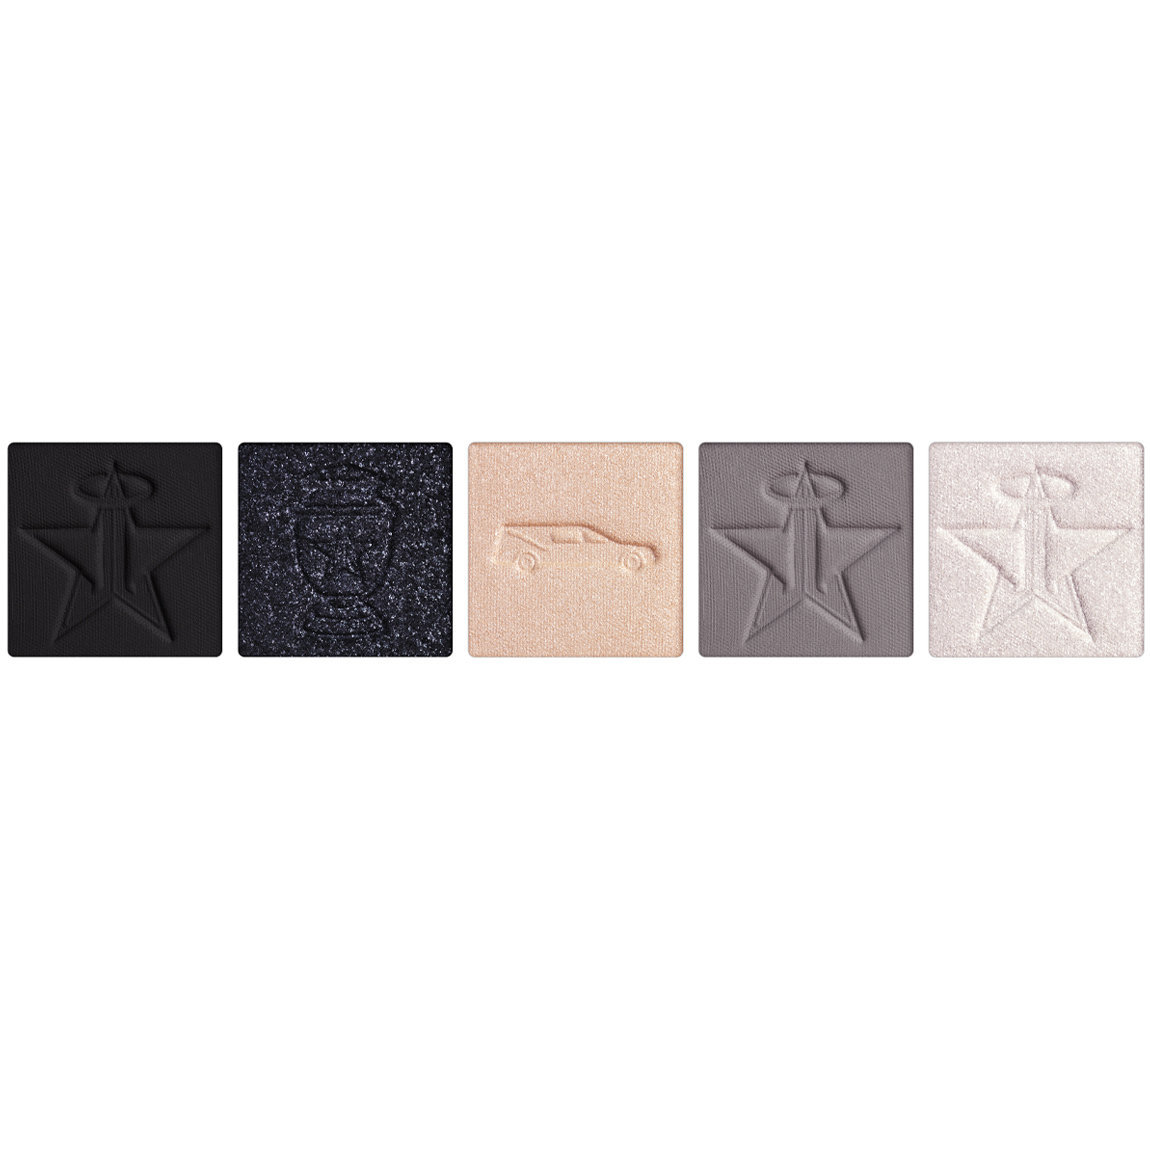 Jeffree Star Cosmetics Cremated Artistry Singles Bundle alternative view 1 - product swatch.